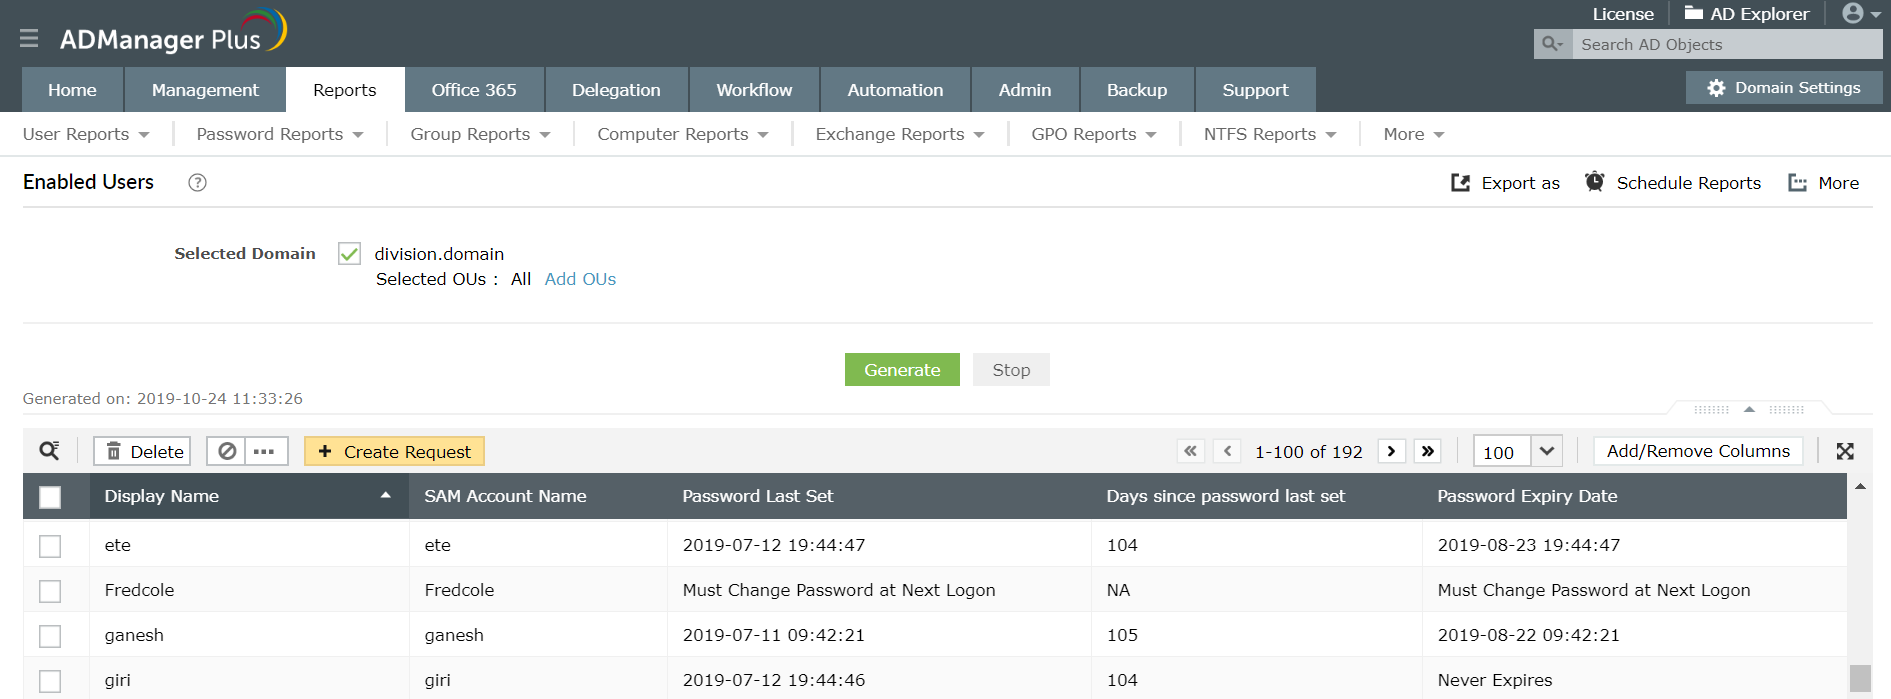 A screenshot of ADManager Plus with a report of all enabled users in Active Directory